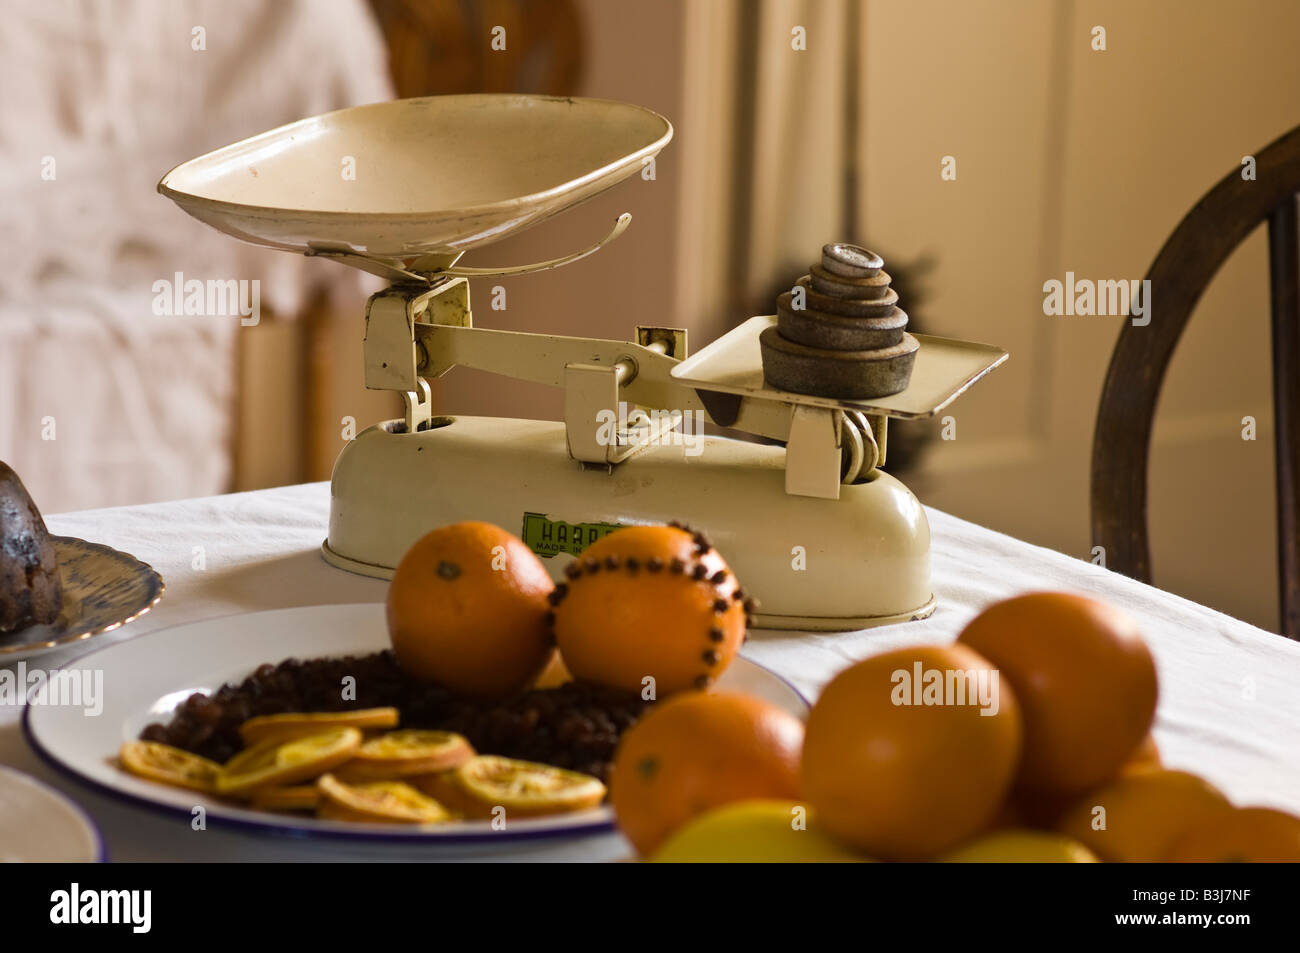 Old-fashioned weighing scales with oranges in a Victorian kitchen Stock Photo